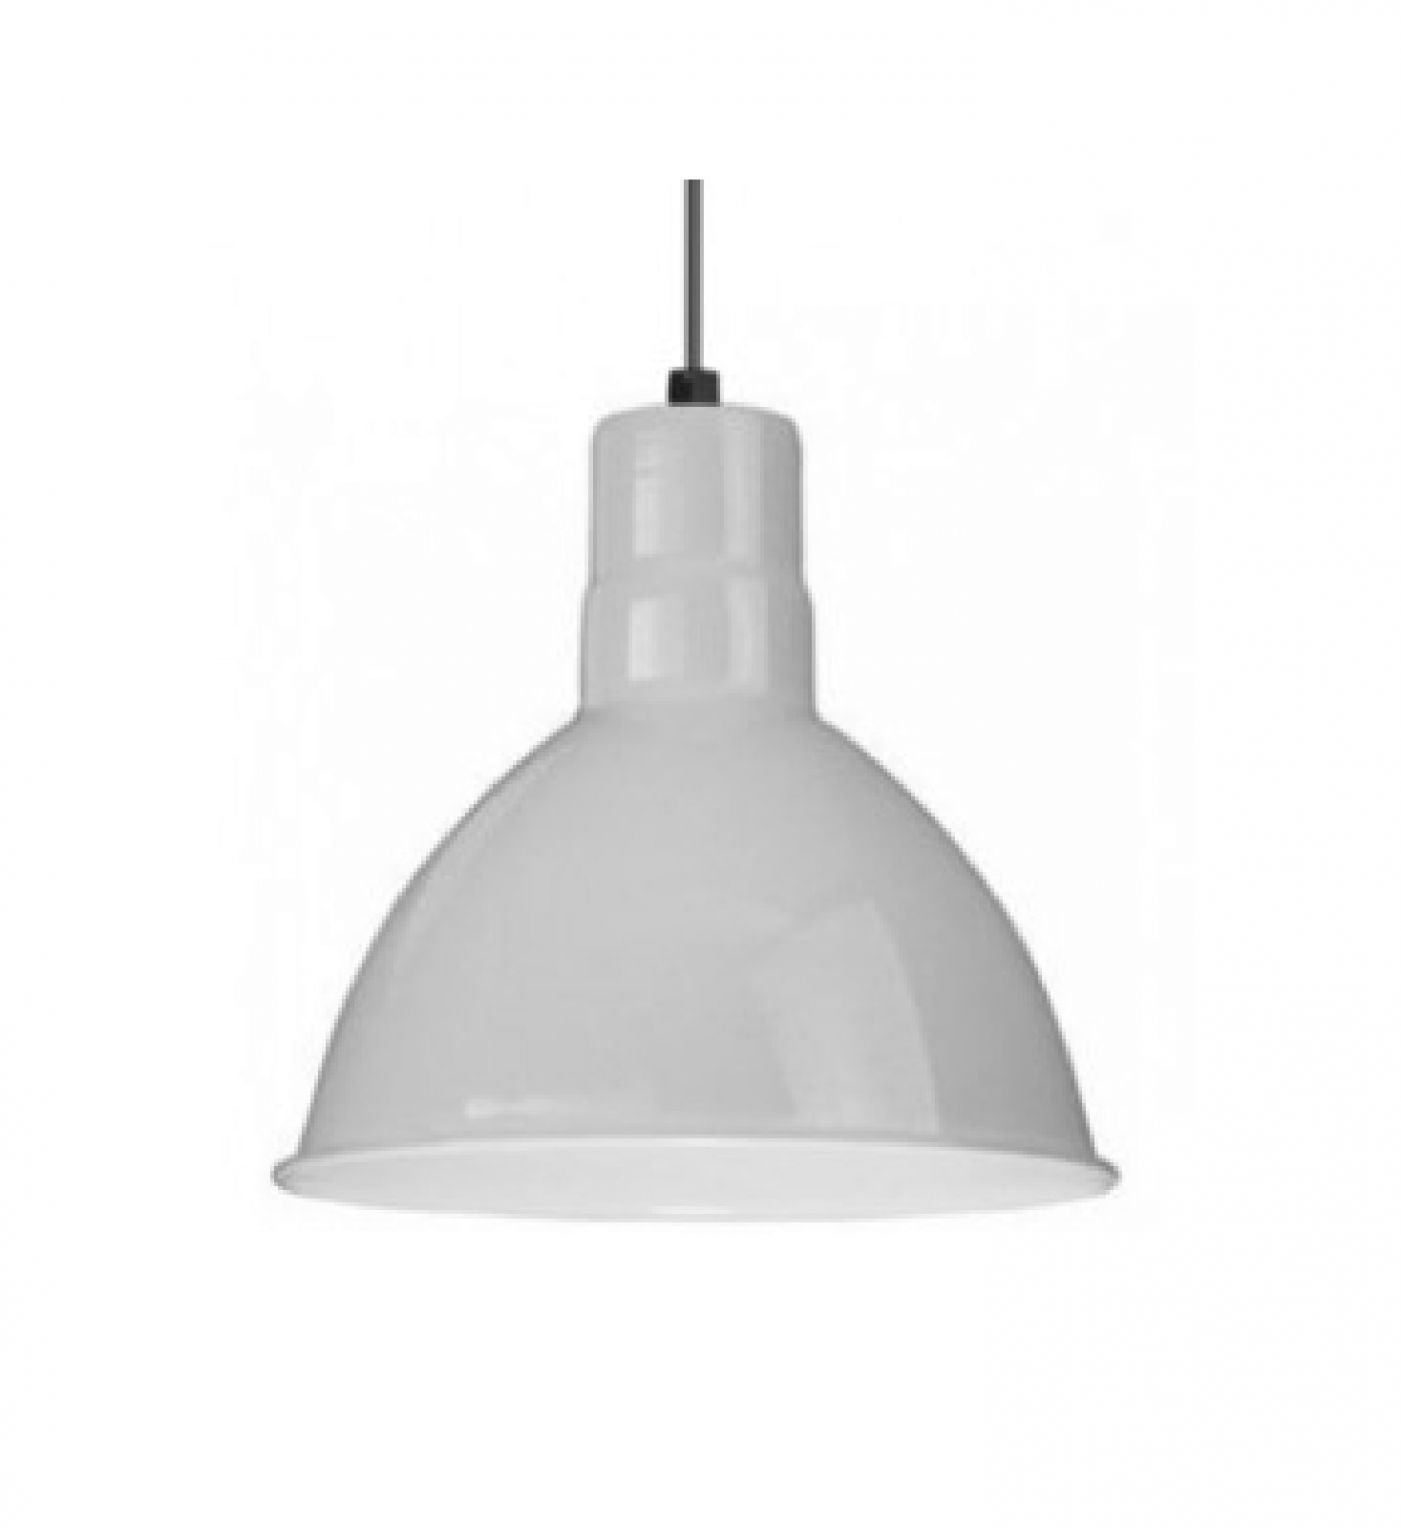 Alcon lighting 15201 deep dome architectural led high bay direct alcon lighting 15201 deep dome architectural led high bay direct down light fixture alconlighting arubaitofo Images